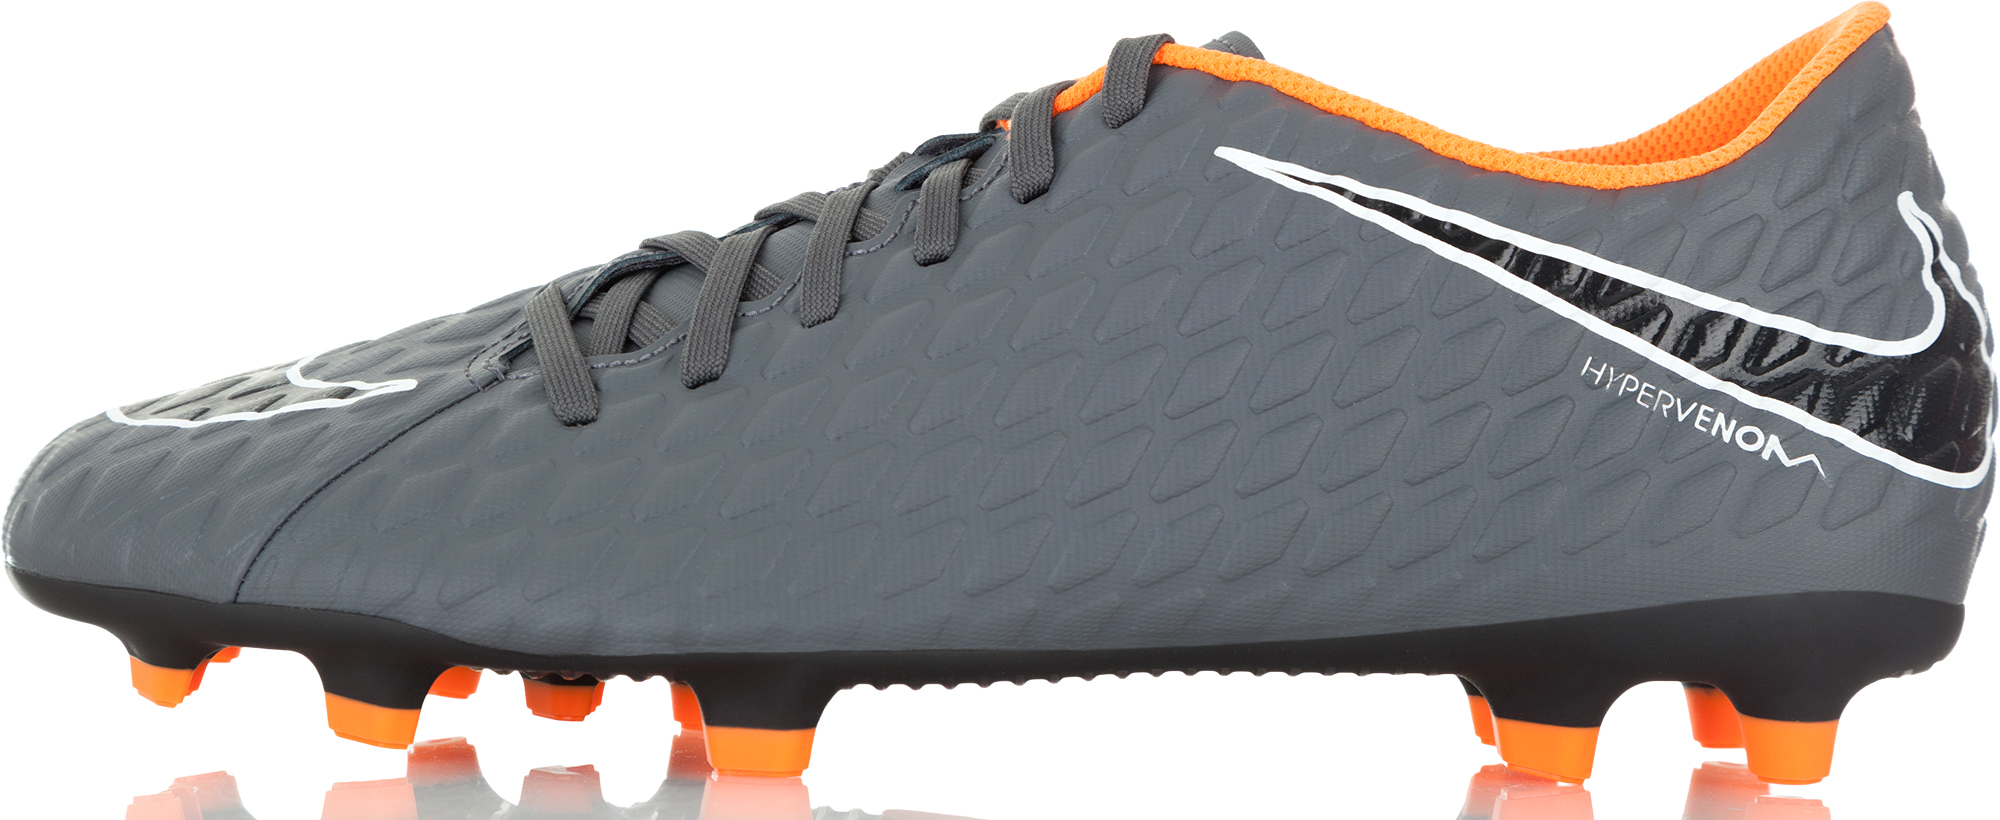 Nike Бутсы мужские Nike Hypervenom Phantom 3 Club FG бутсы nike phantom 3 academy ag pro ah8845 081